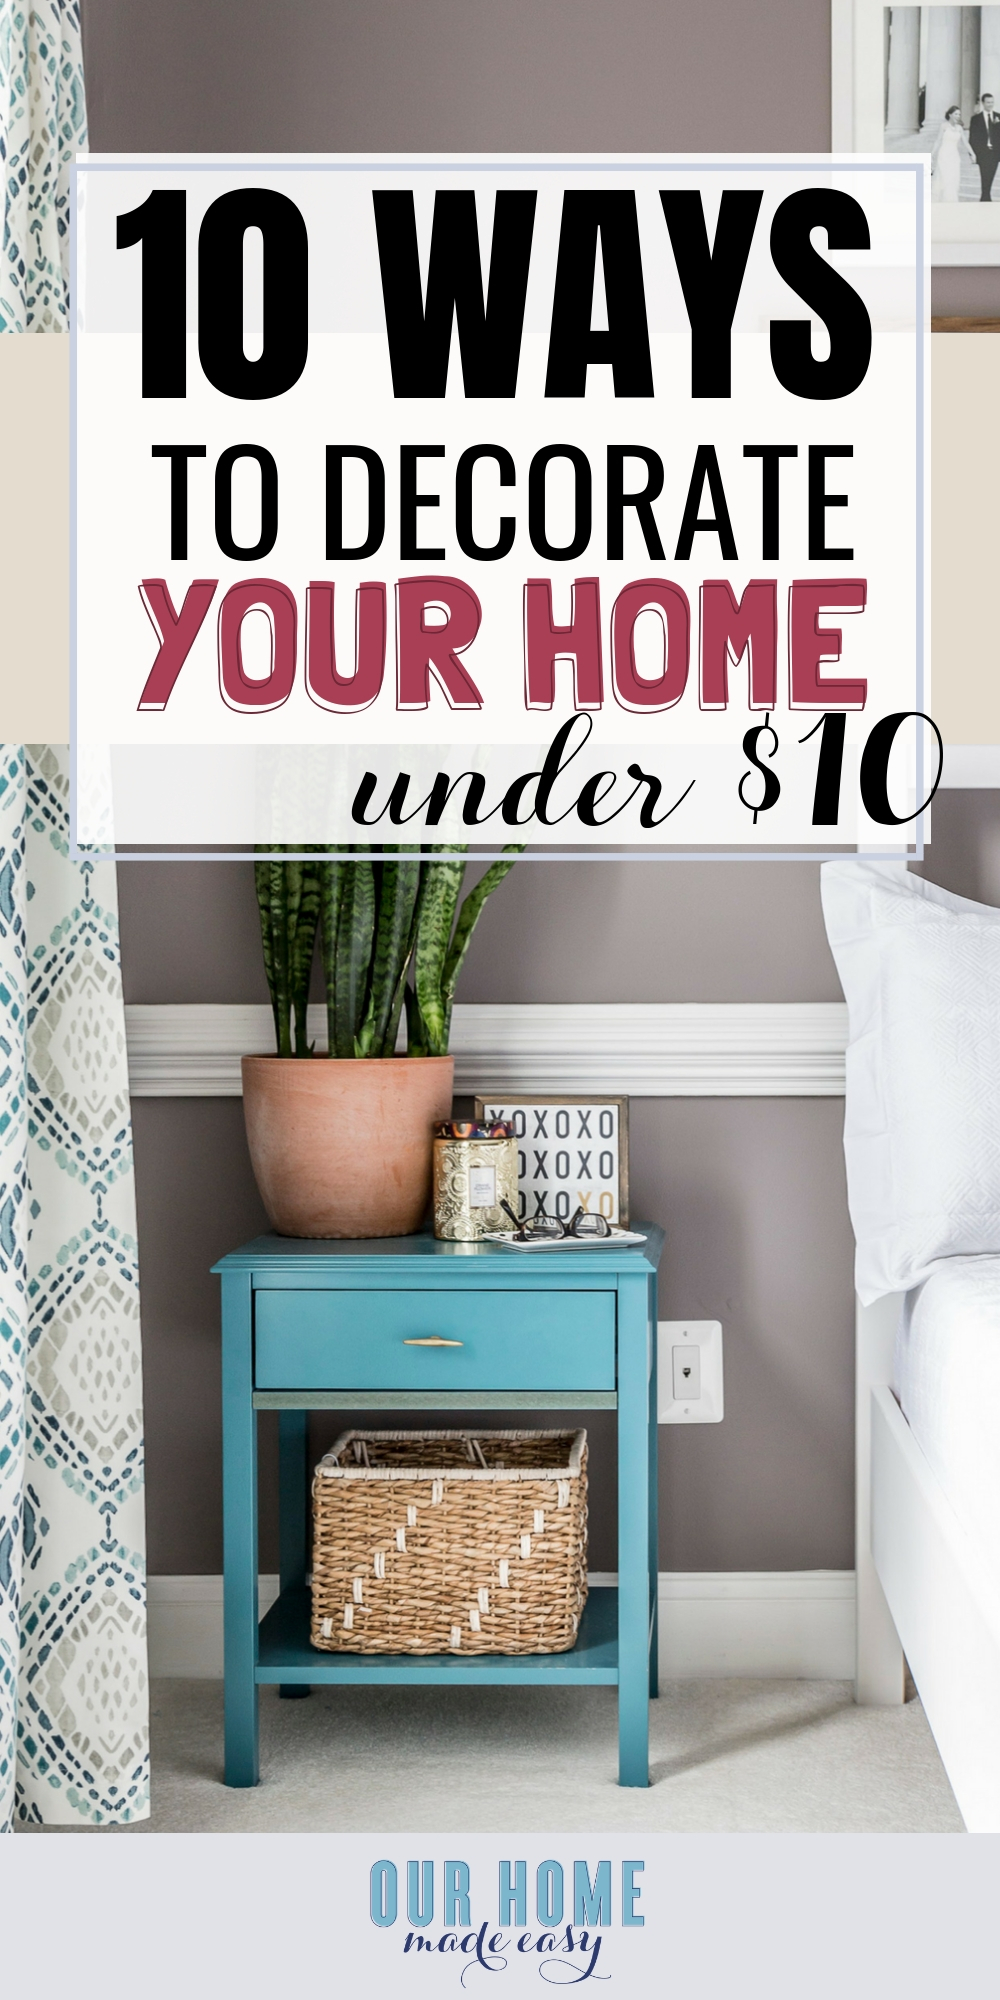 10 Ways to Decorate Your Home for Under $10